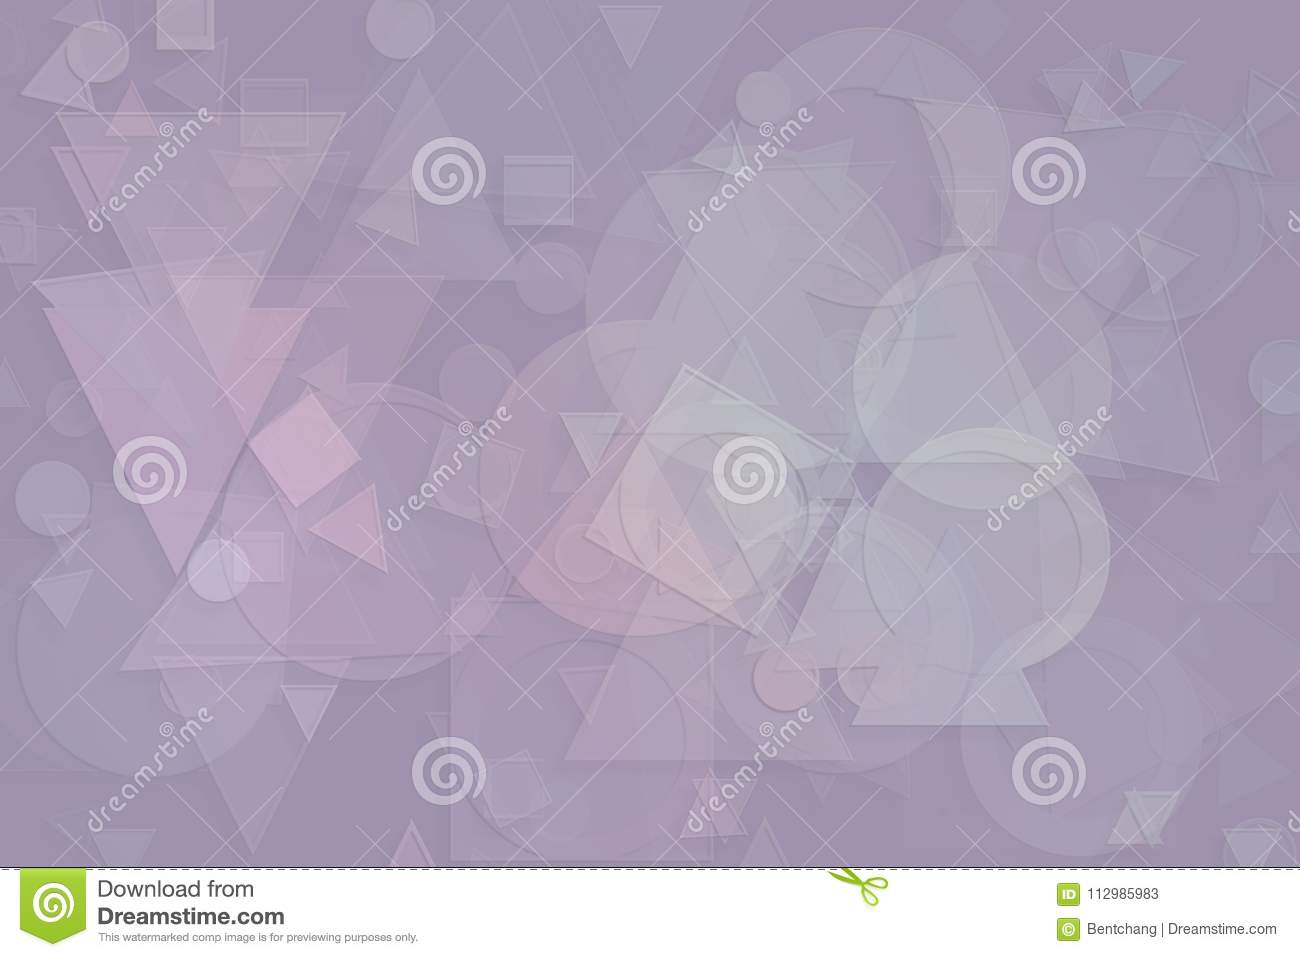 Abstract shape, for web page, wallpaper or graphic design. Pattern, geometric, style, square & generative.